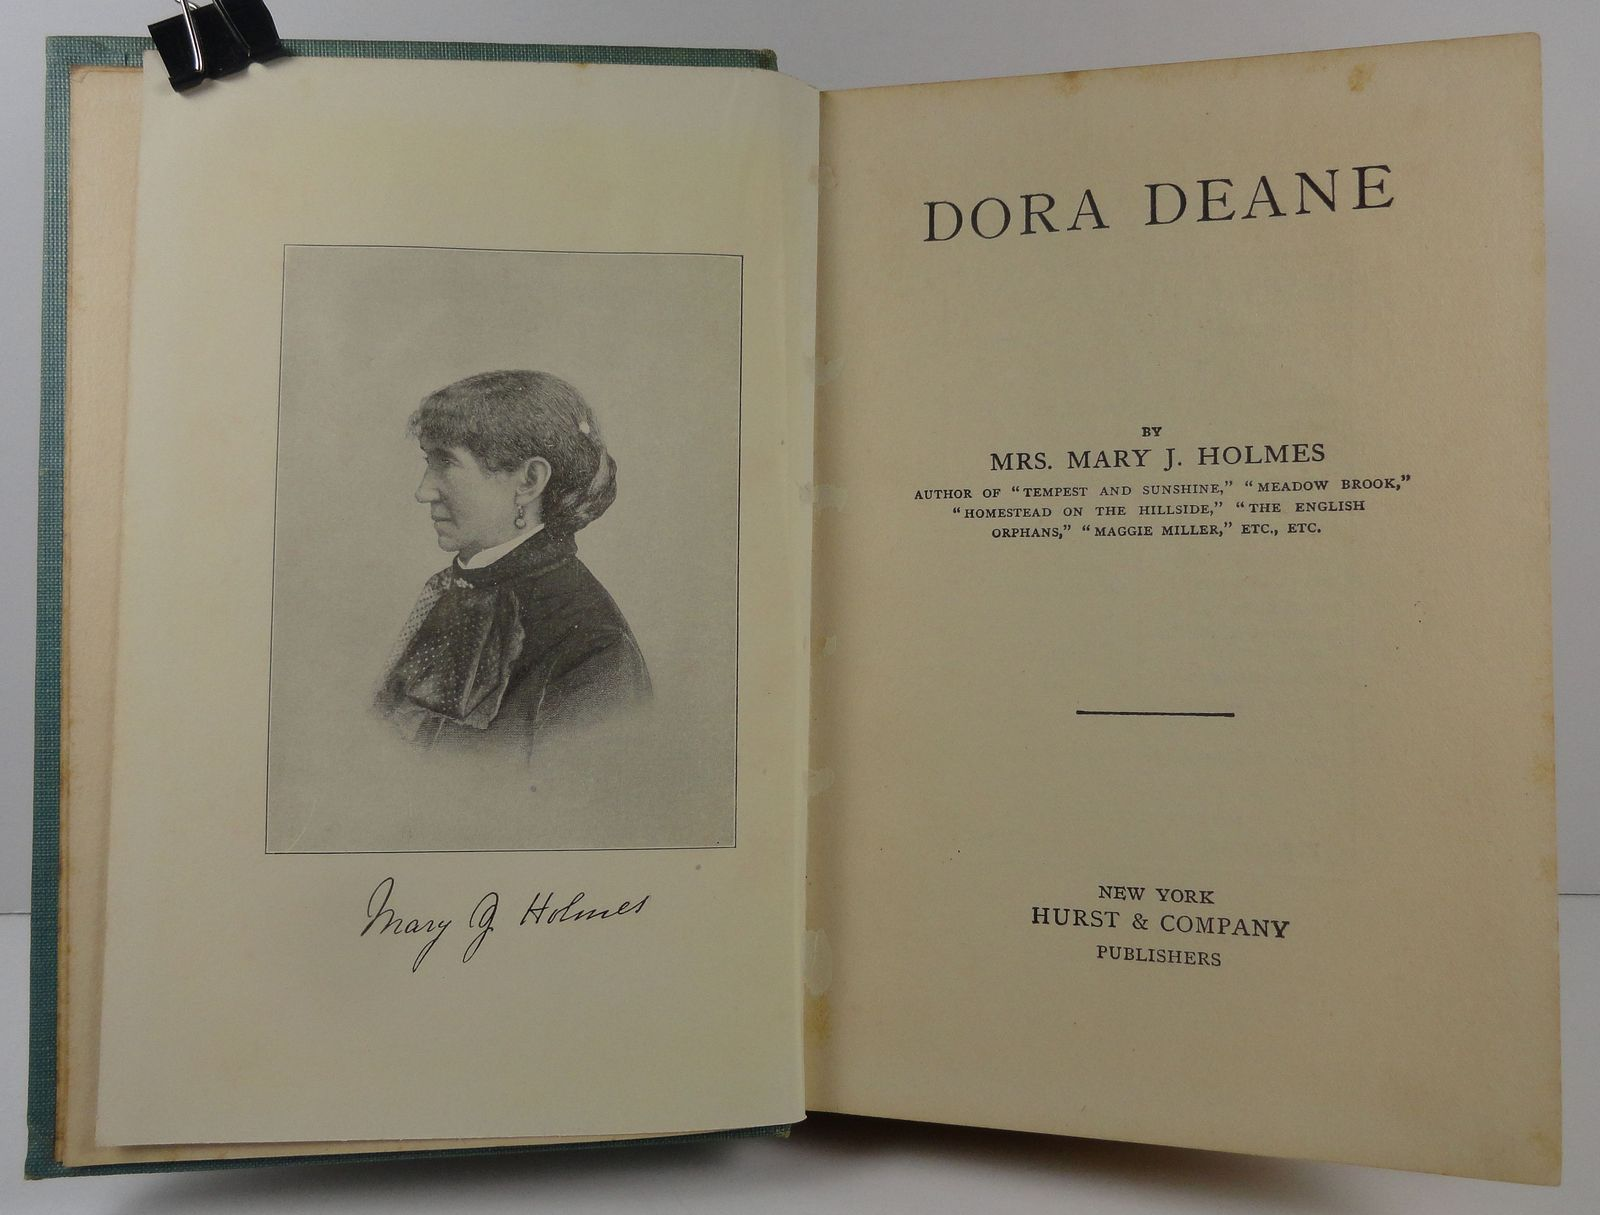 Dora Deane or The East India Uncle by Mrs. Mary J. Holmes